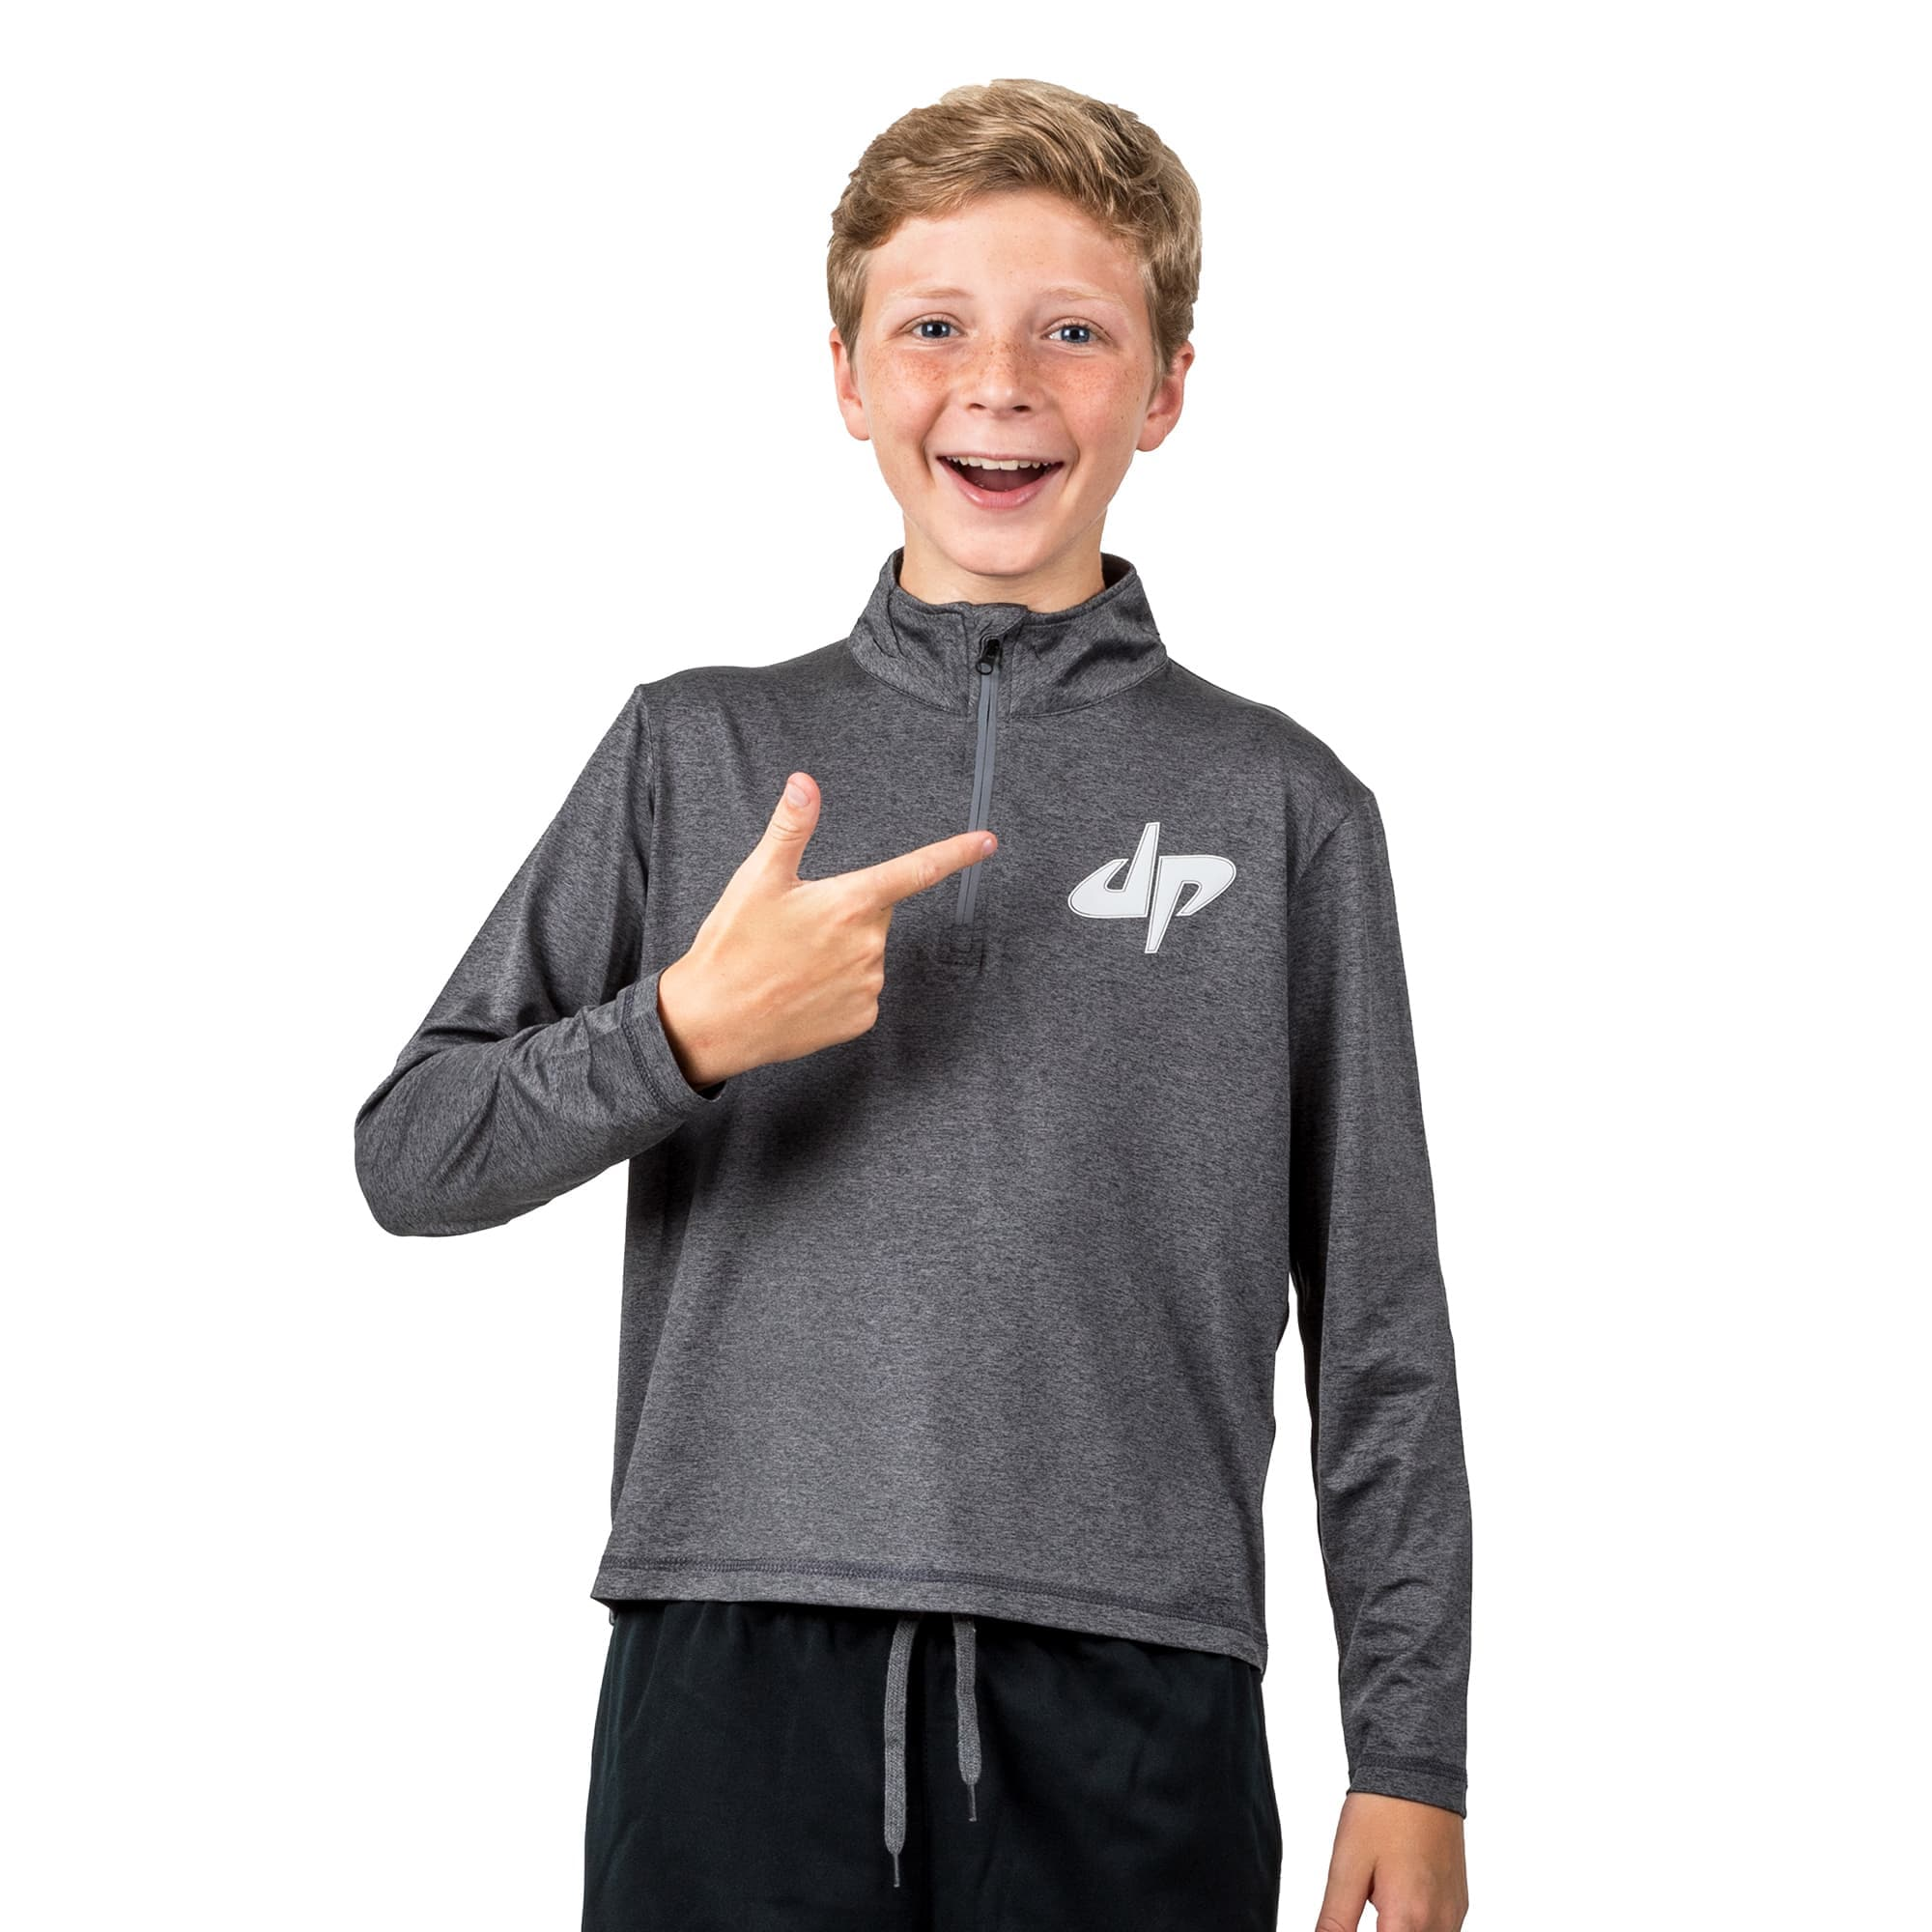 Youth Rivalry Reflective Half Zip Pullover Top II